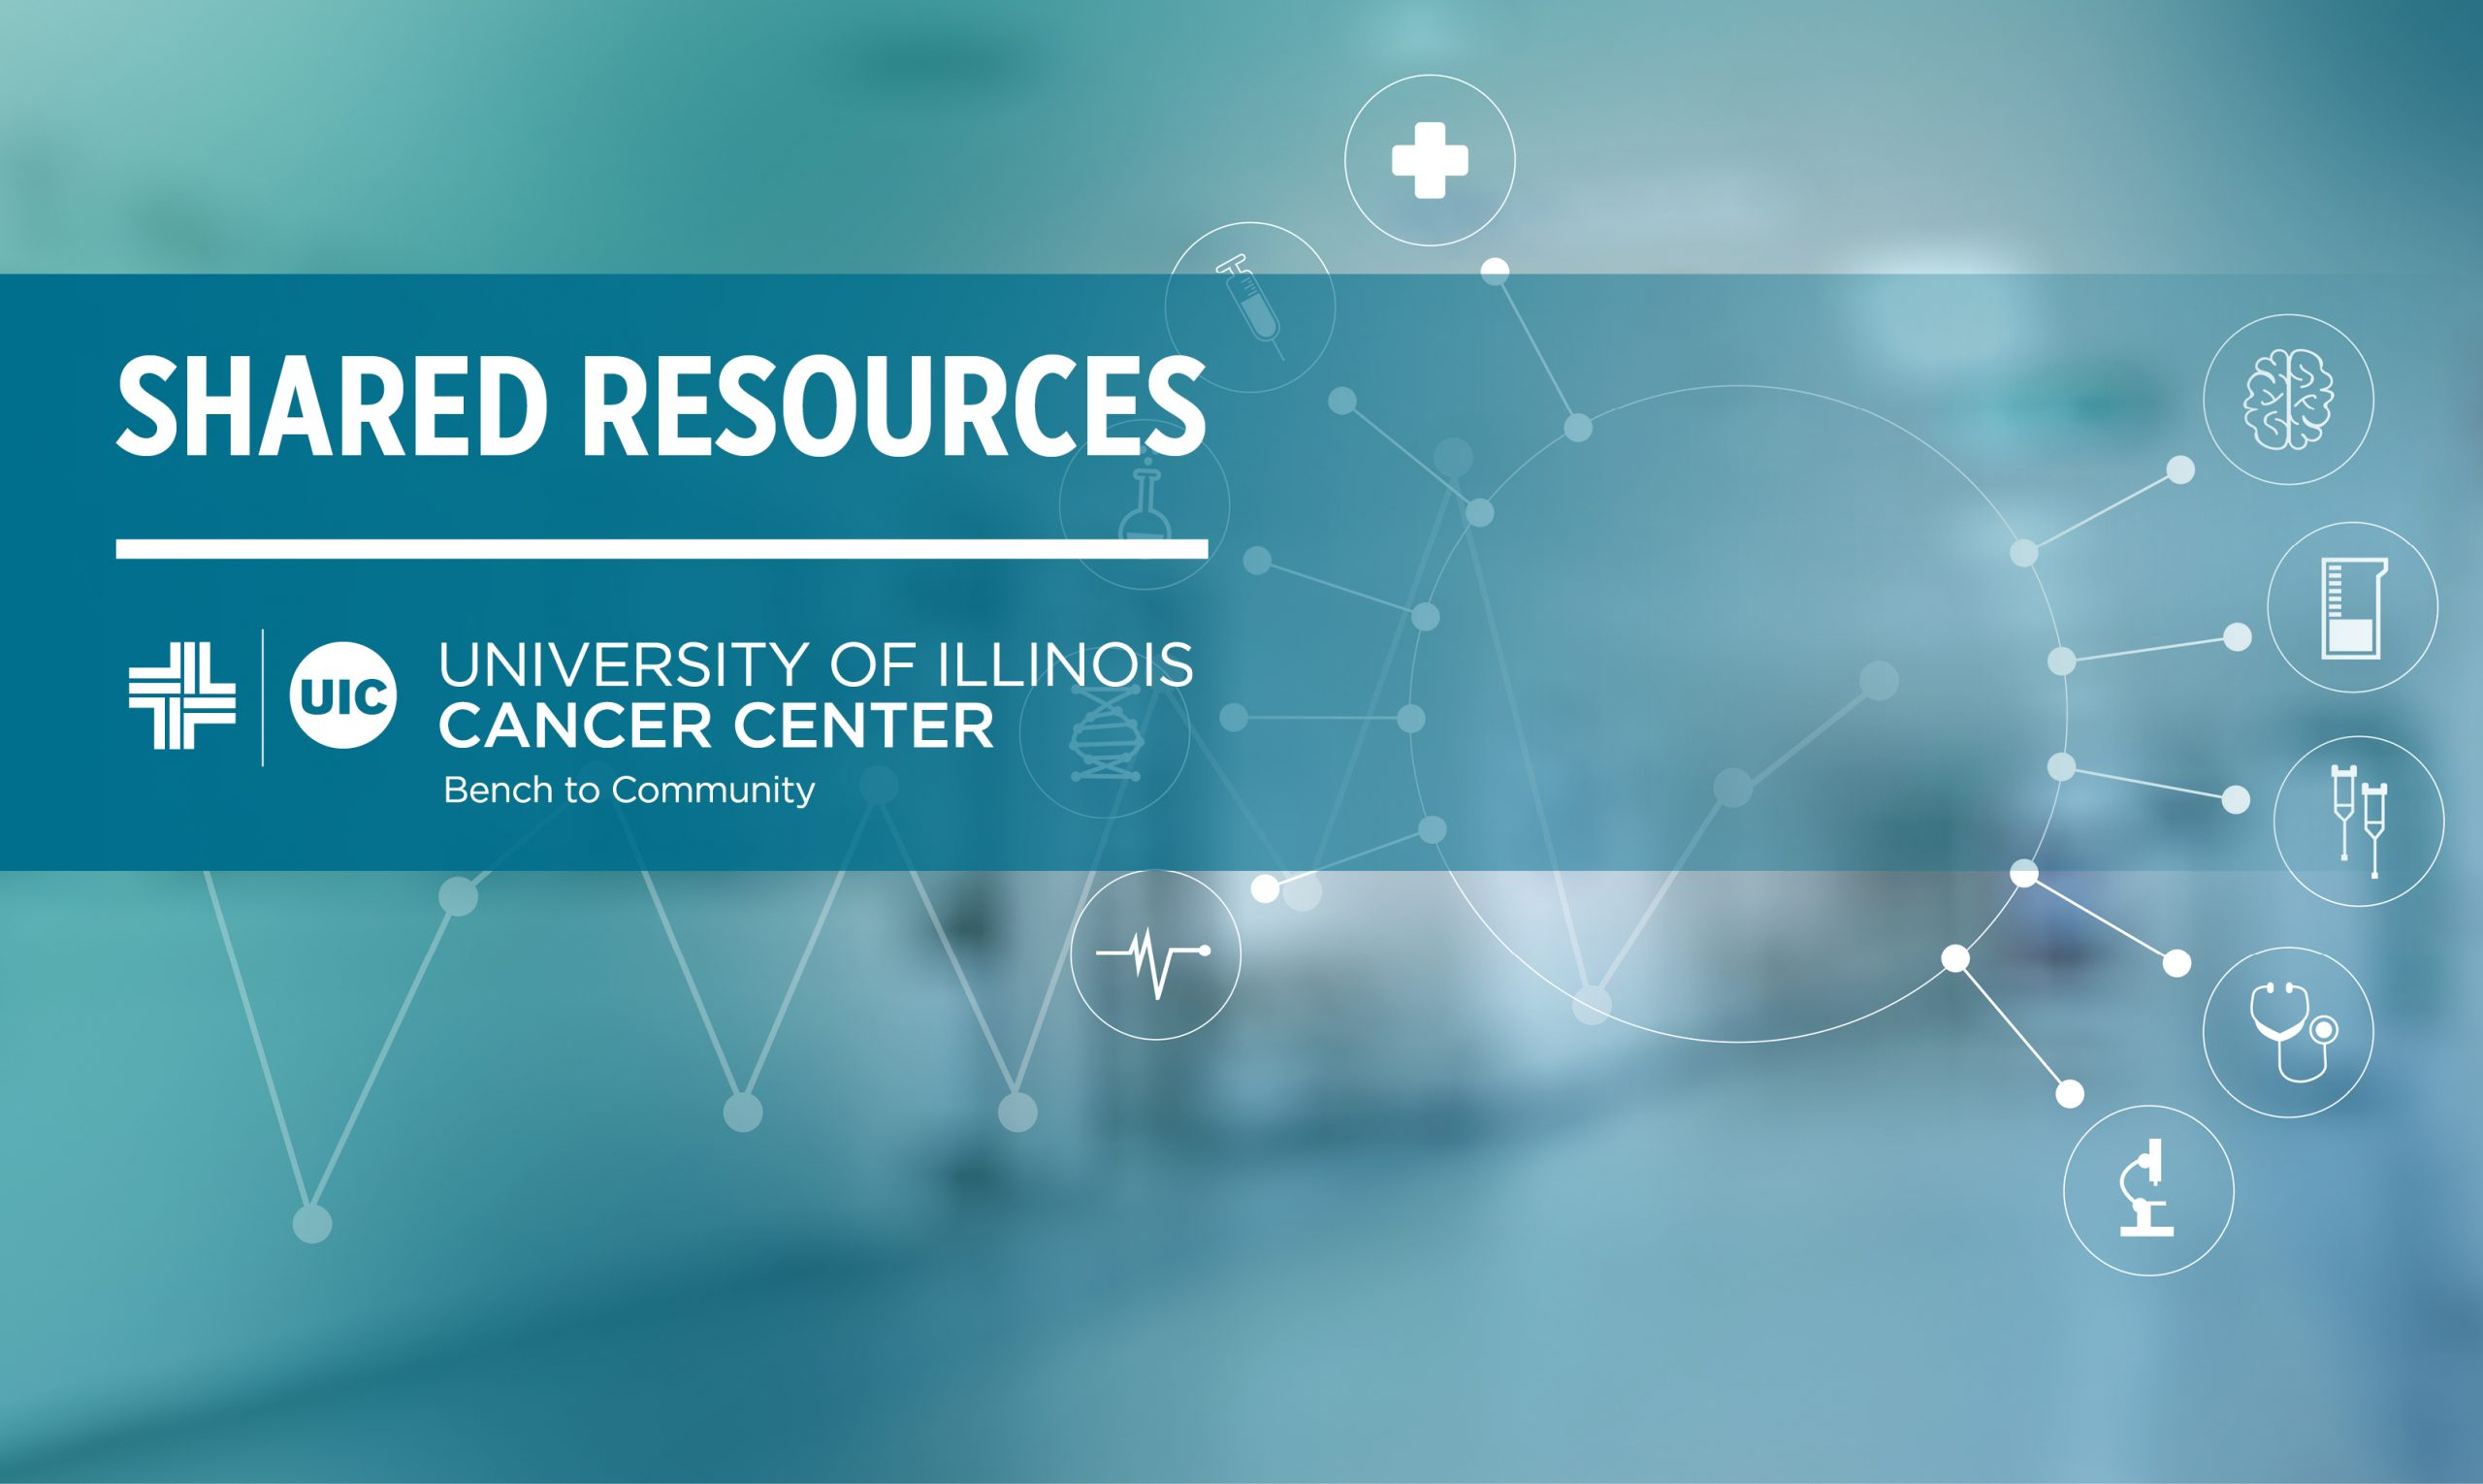 Shared Resources UIC University of Illinois Cancer Center Bench to Community.